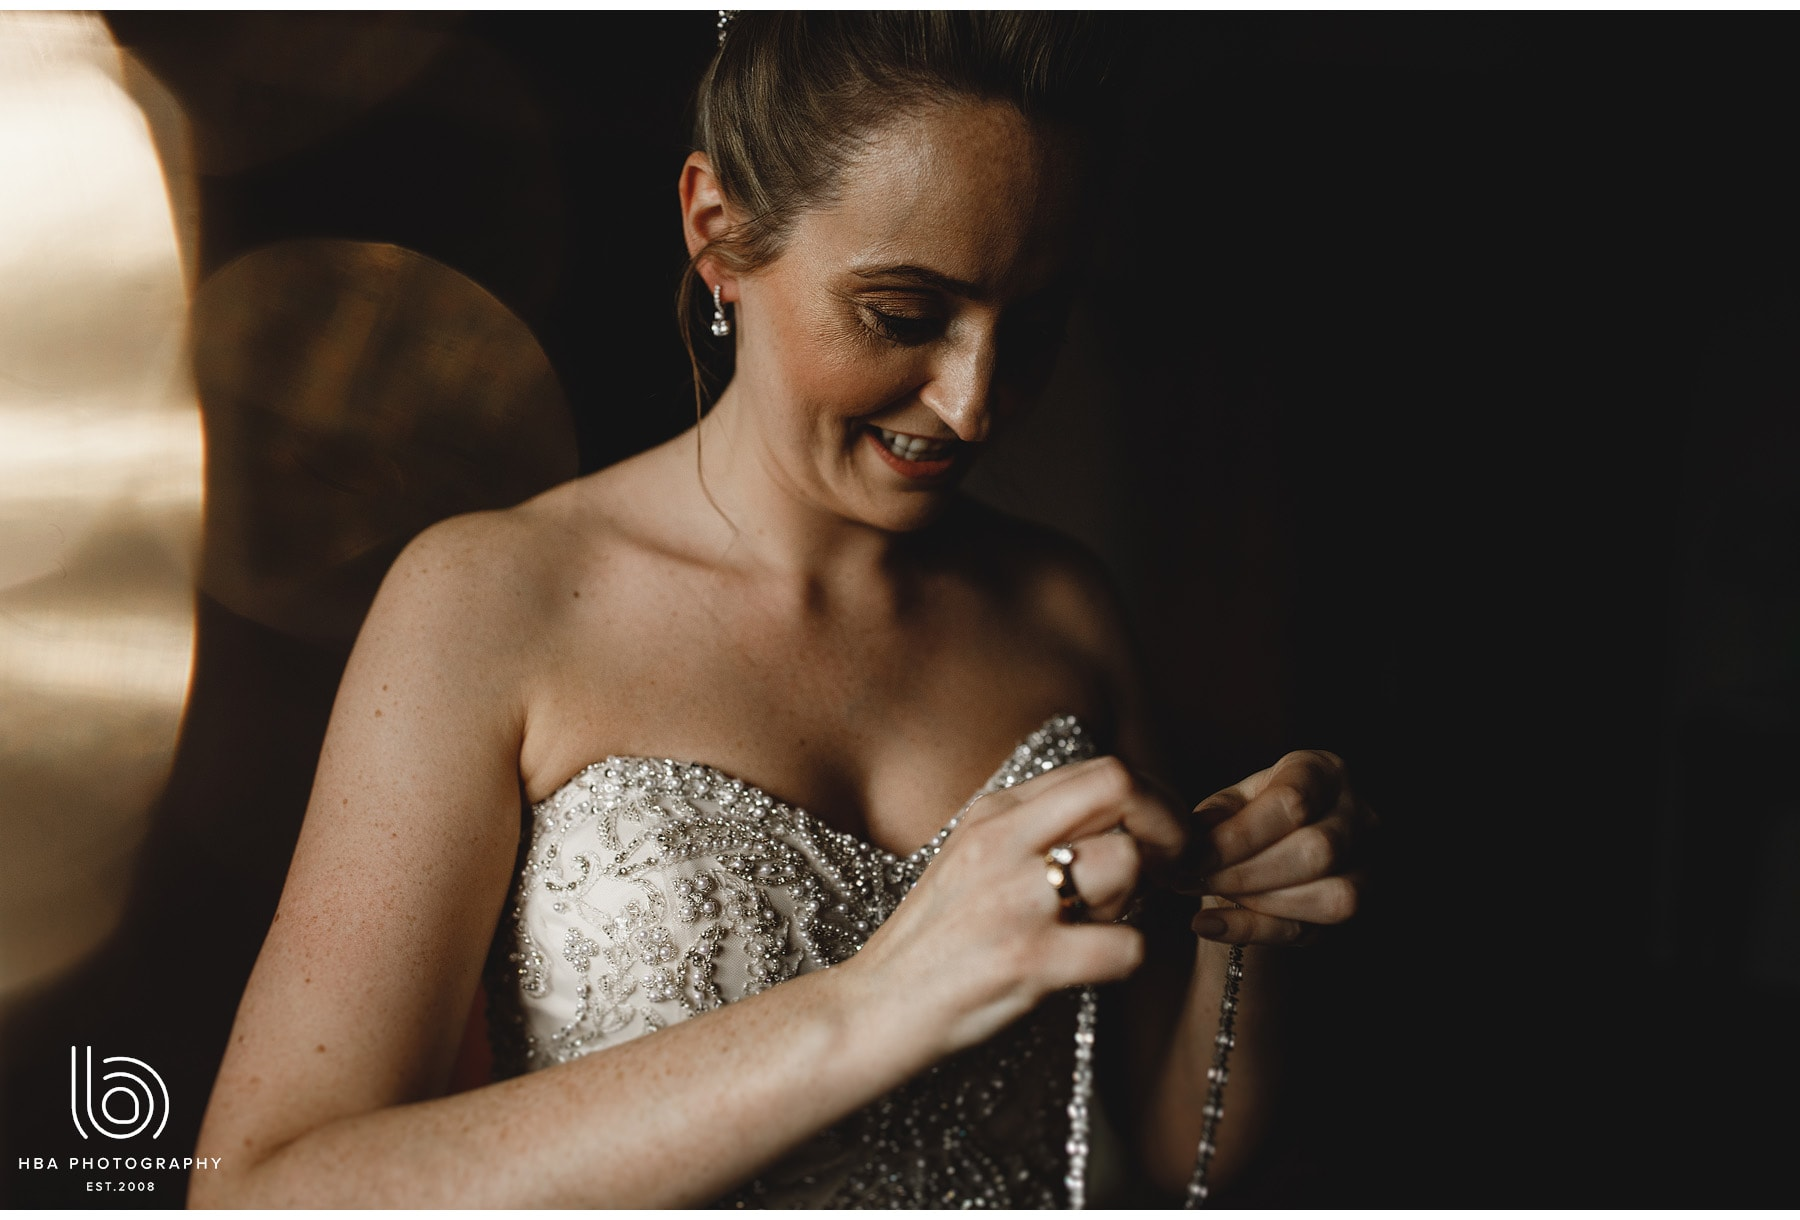 the bride putting on her necklace